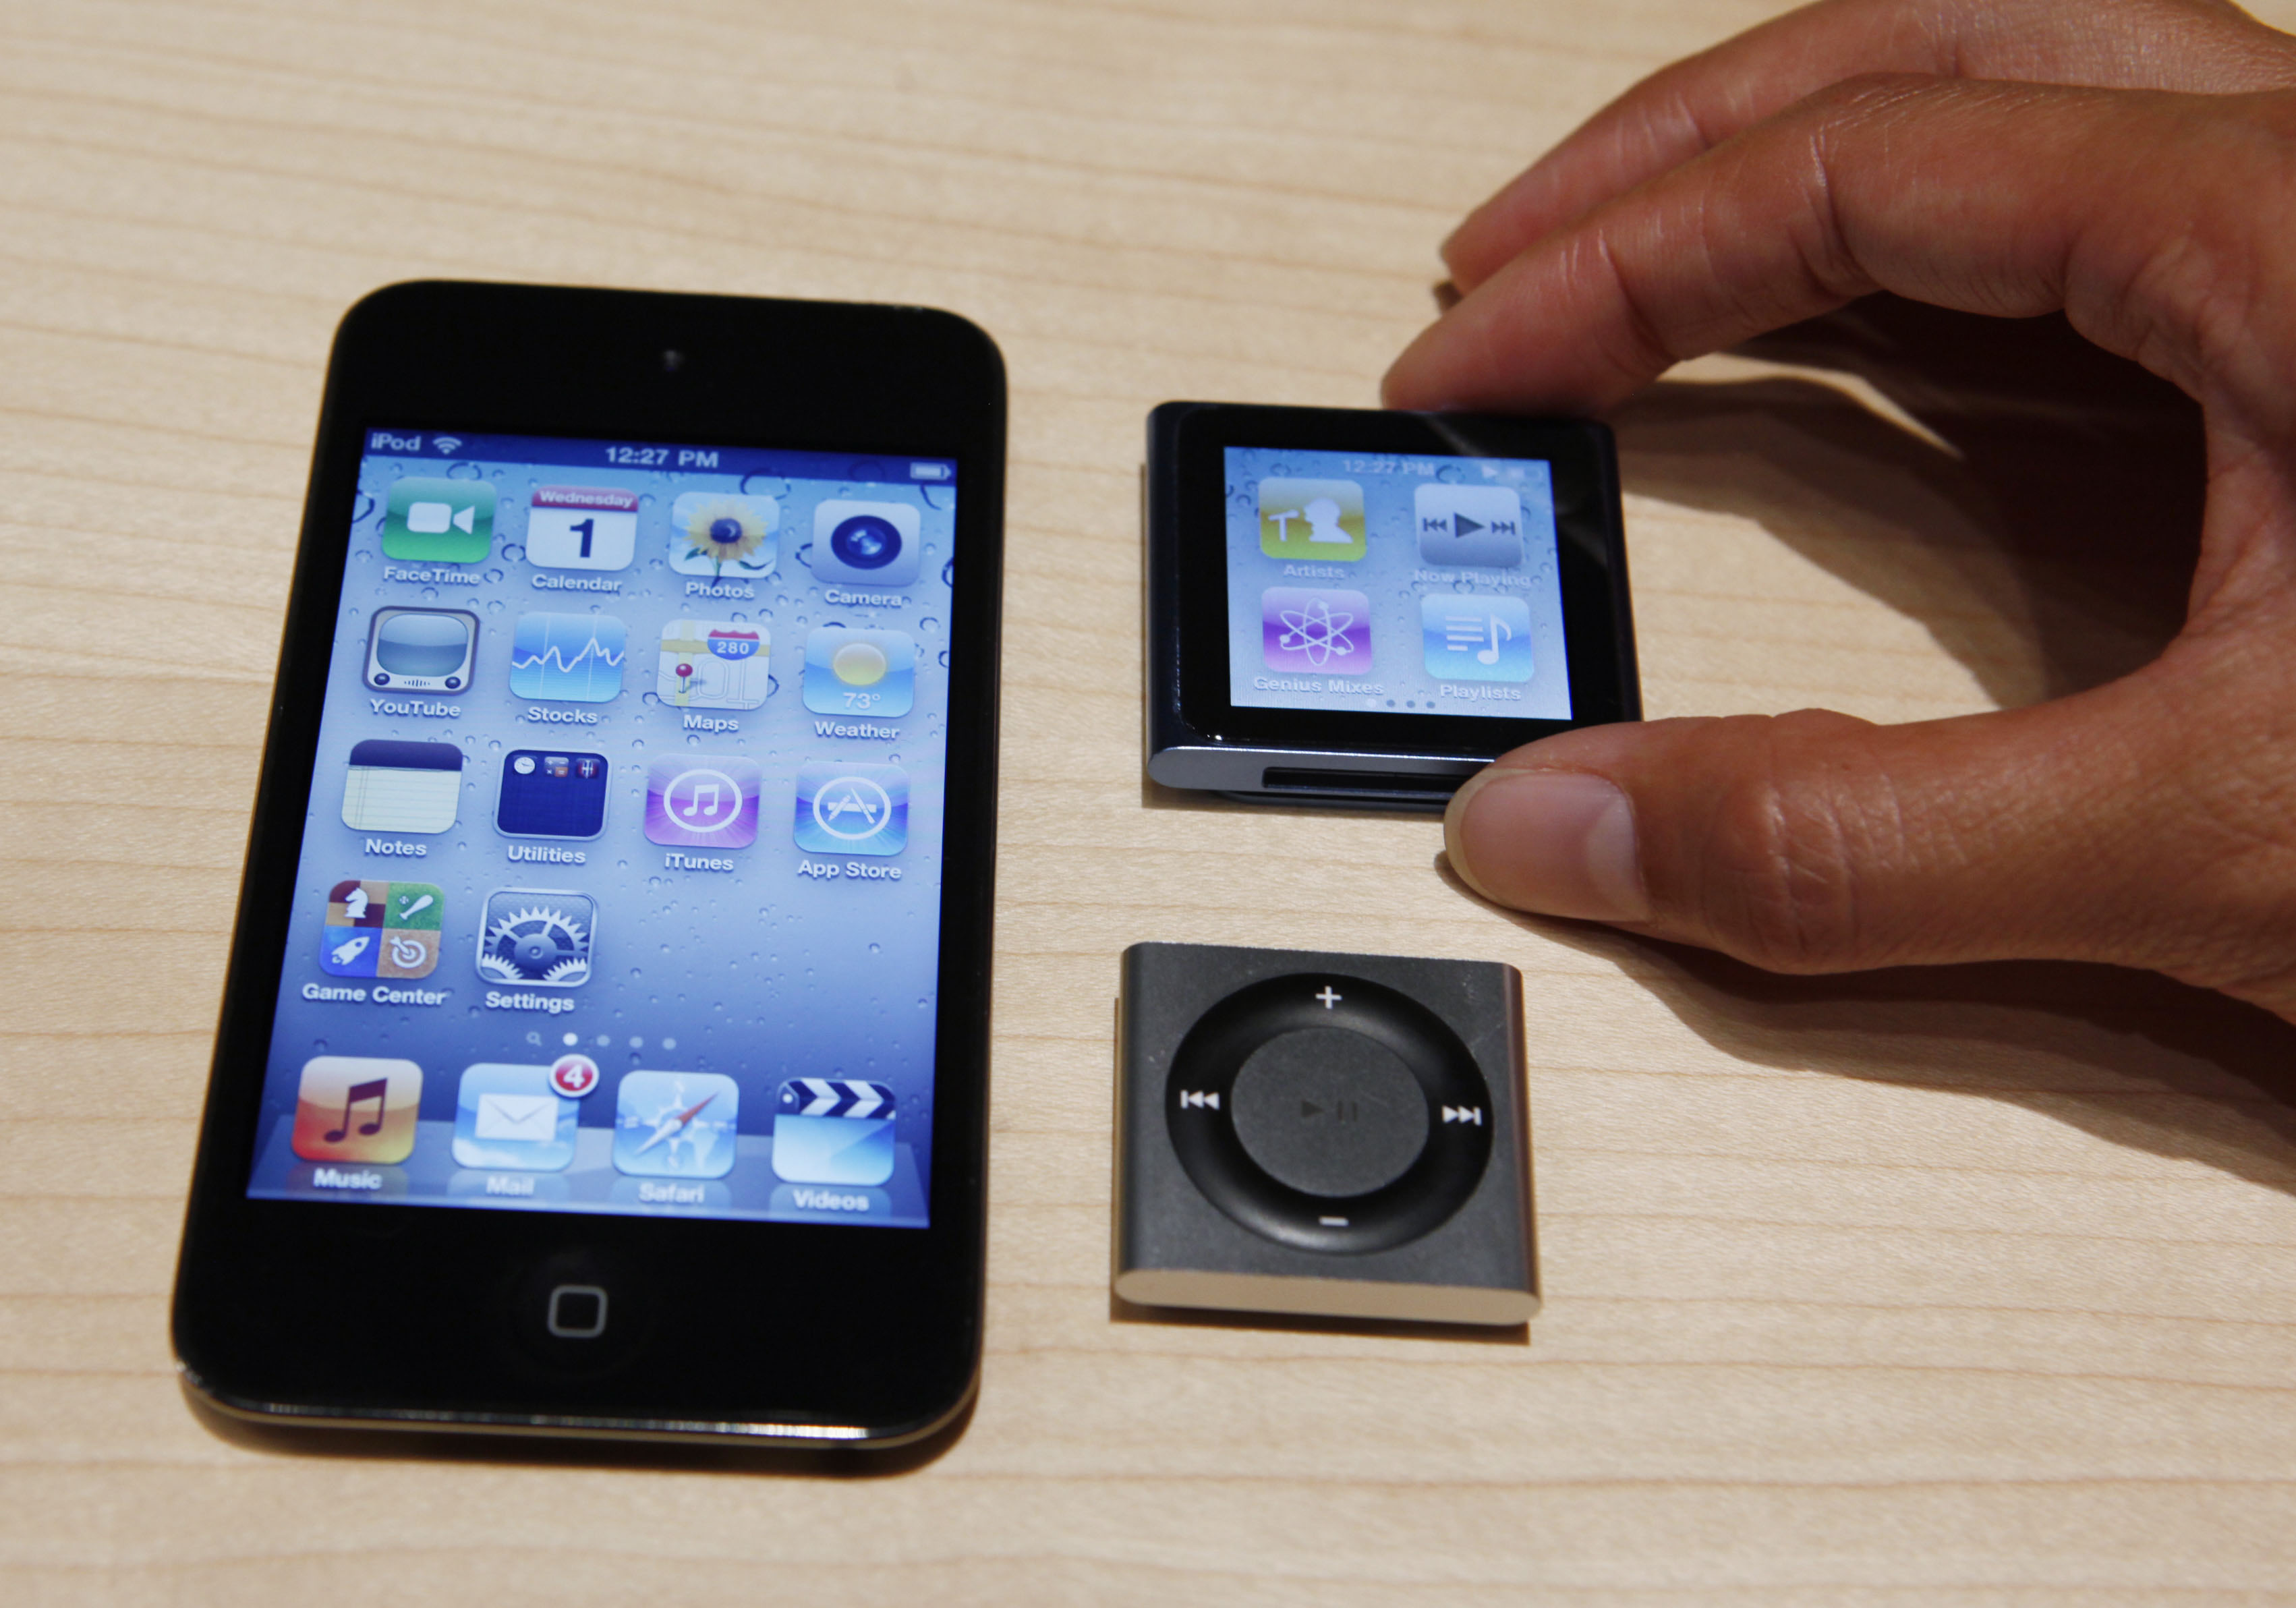 <div class='meta'><div class='origin-logo' data-origin='AP'></div><span class='caption-text' data-credit='AP Photo/Paul Sakuma'>An Apple employee holds a new Apple iPod Nano, upper right, as the new Ipod Shuffle, bottom right, and iPod Touch, left, are shown, Wednesday, Sept. 1, 2010, in San Francisco.</span></div>